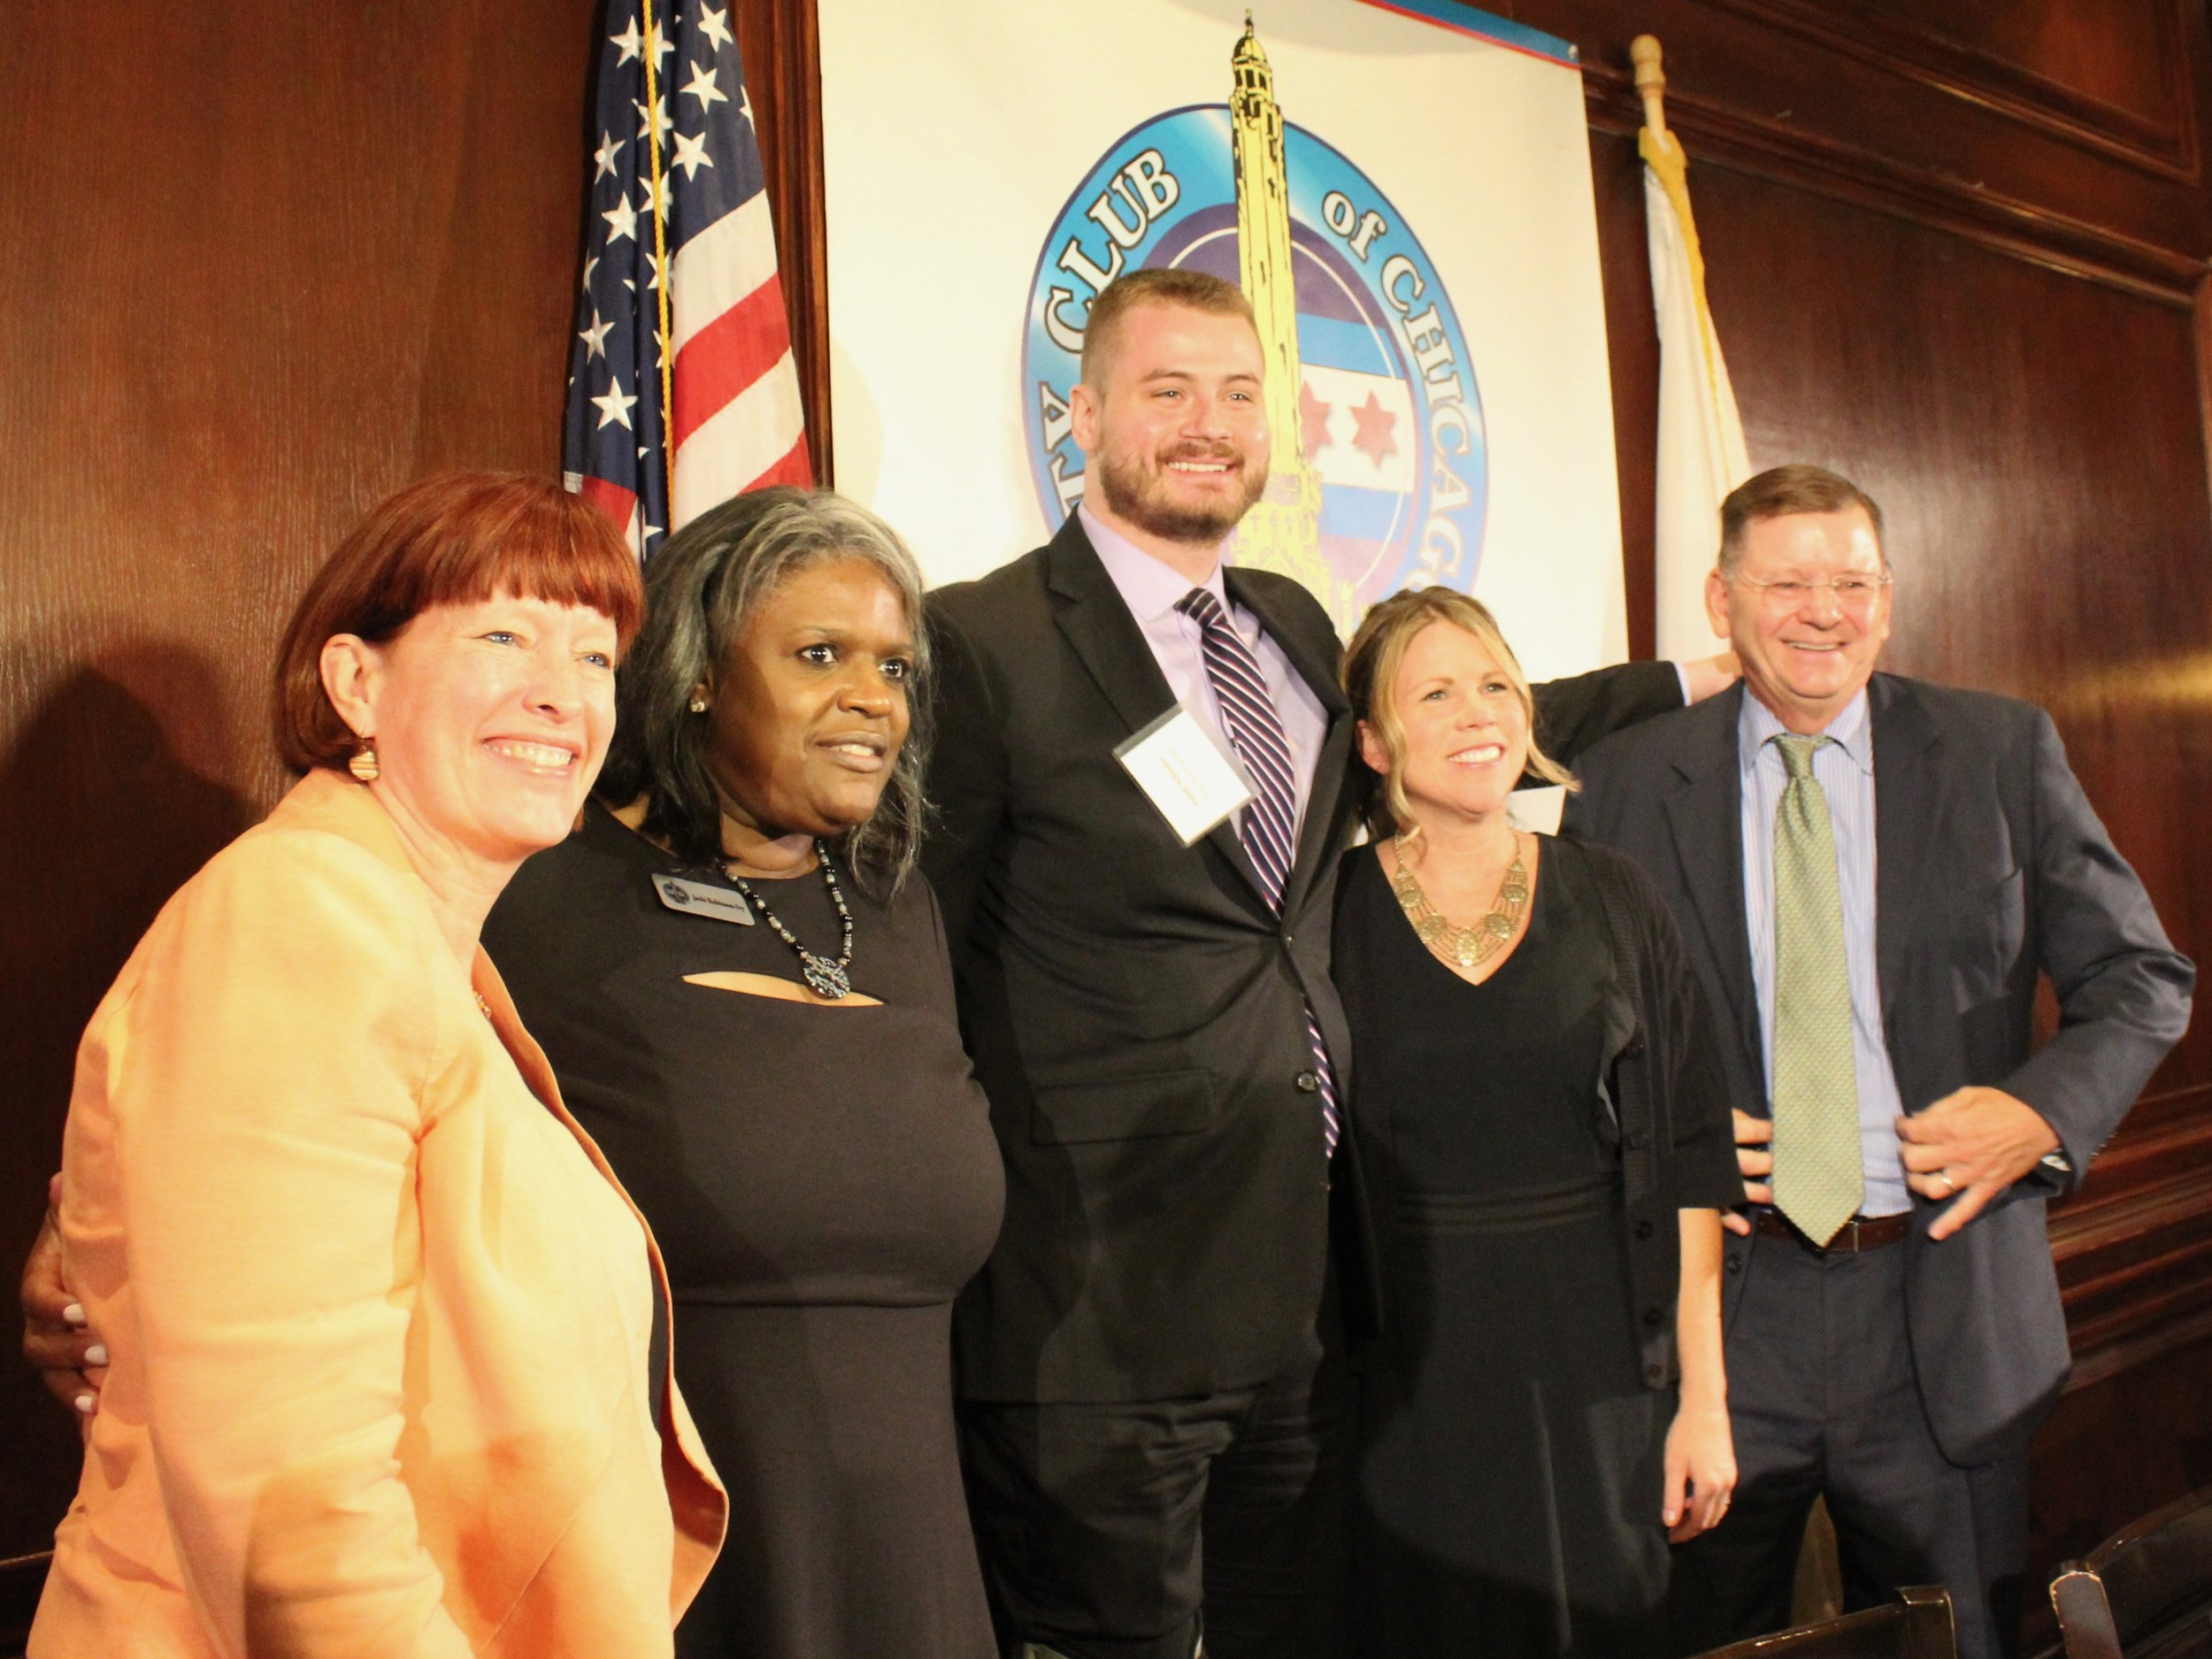 State Sen. Heather Steans, Jacki Robinson-Ivy of the City Club of Chicago, Adam Schuster of the Illinois Policy Institute, Kristen McQueary of the Chicago Tribune, and Civic Federation President Laurence Msall pose after Monday's discussion on public pensions. (One Illinois/Ted Cox)